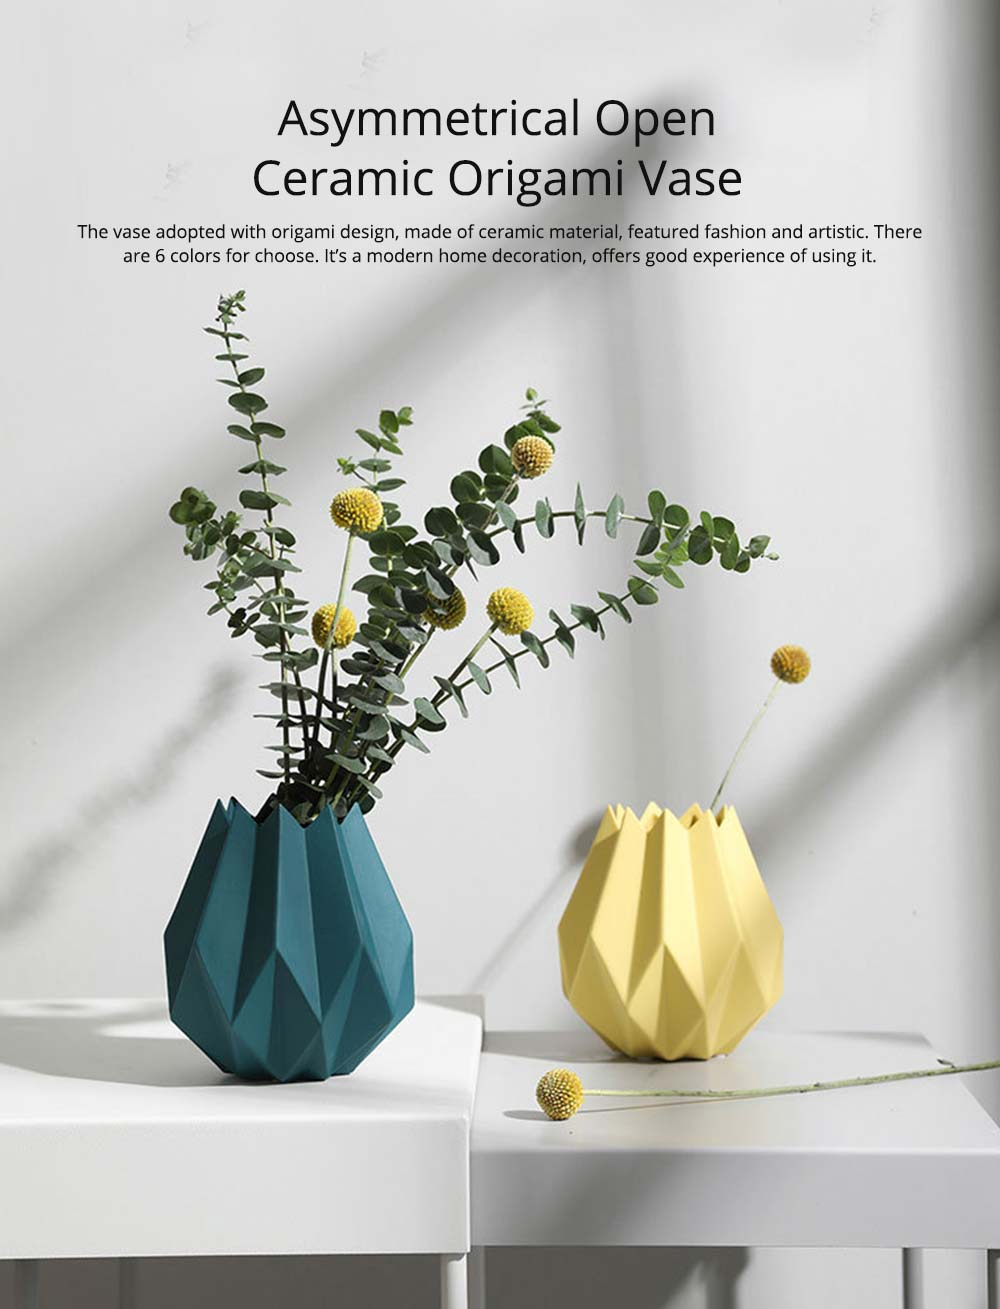 Creative Origami Vase, Ceramic Small Planter Pot, Home Office Desktop Vase Decor 0